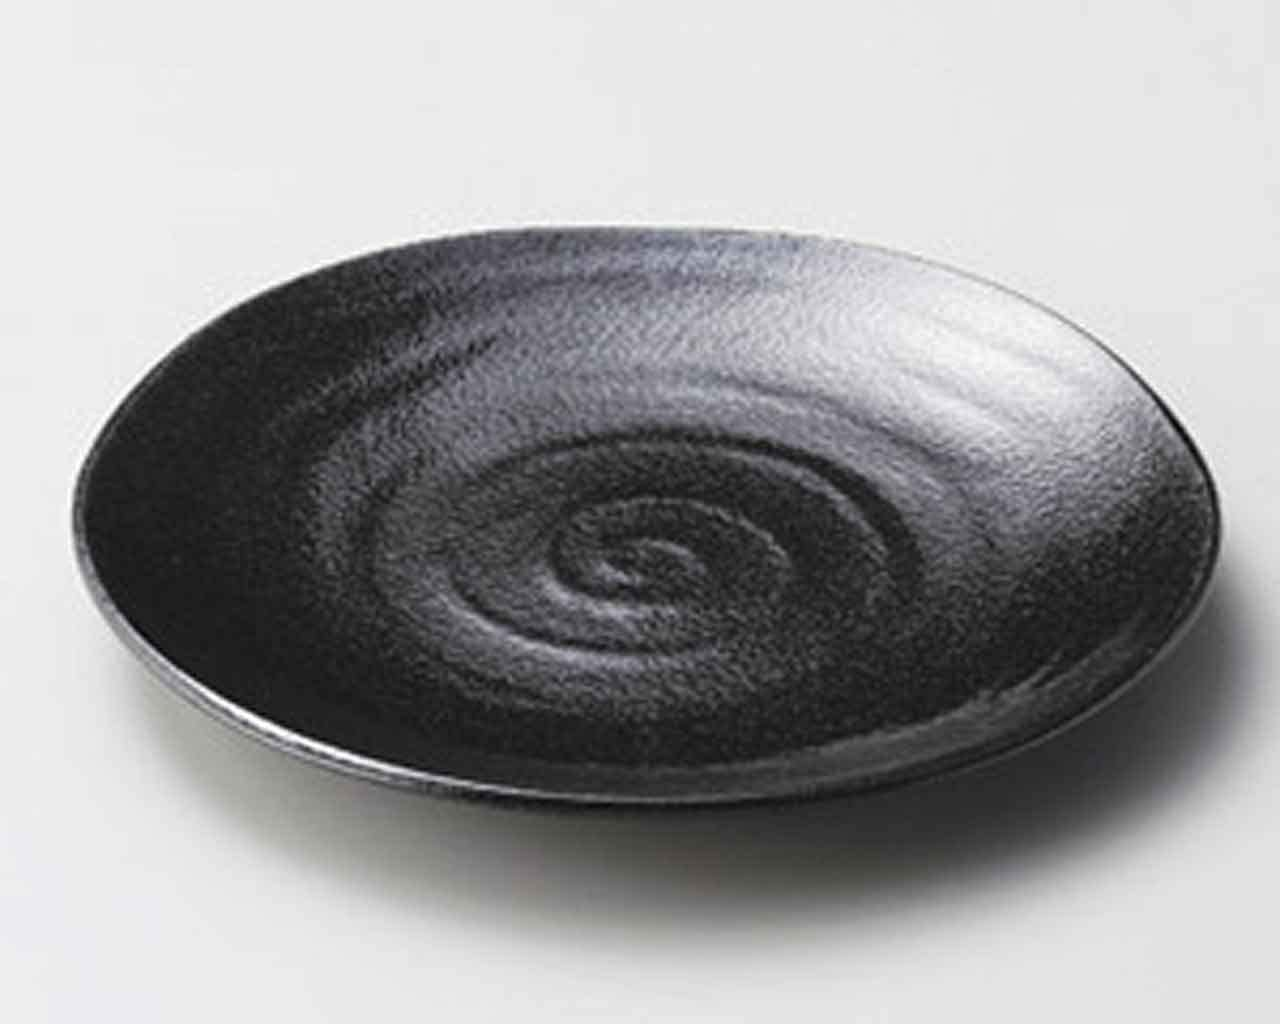 Voltex 9.8inch Set of Online limited product 5 SUSHI Jap PLATES porcelain in Made Black New product type